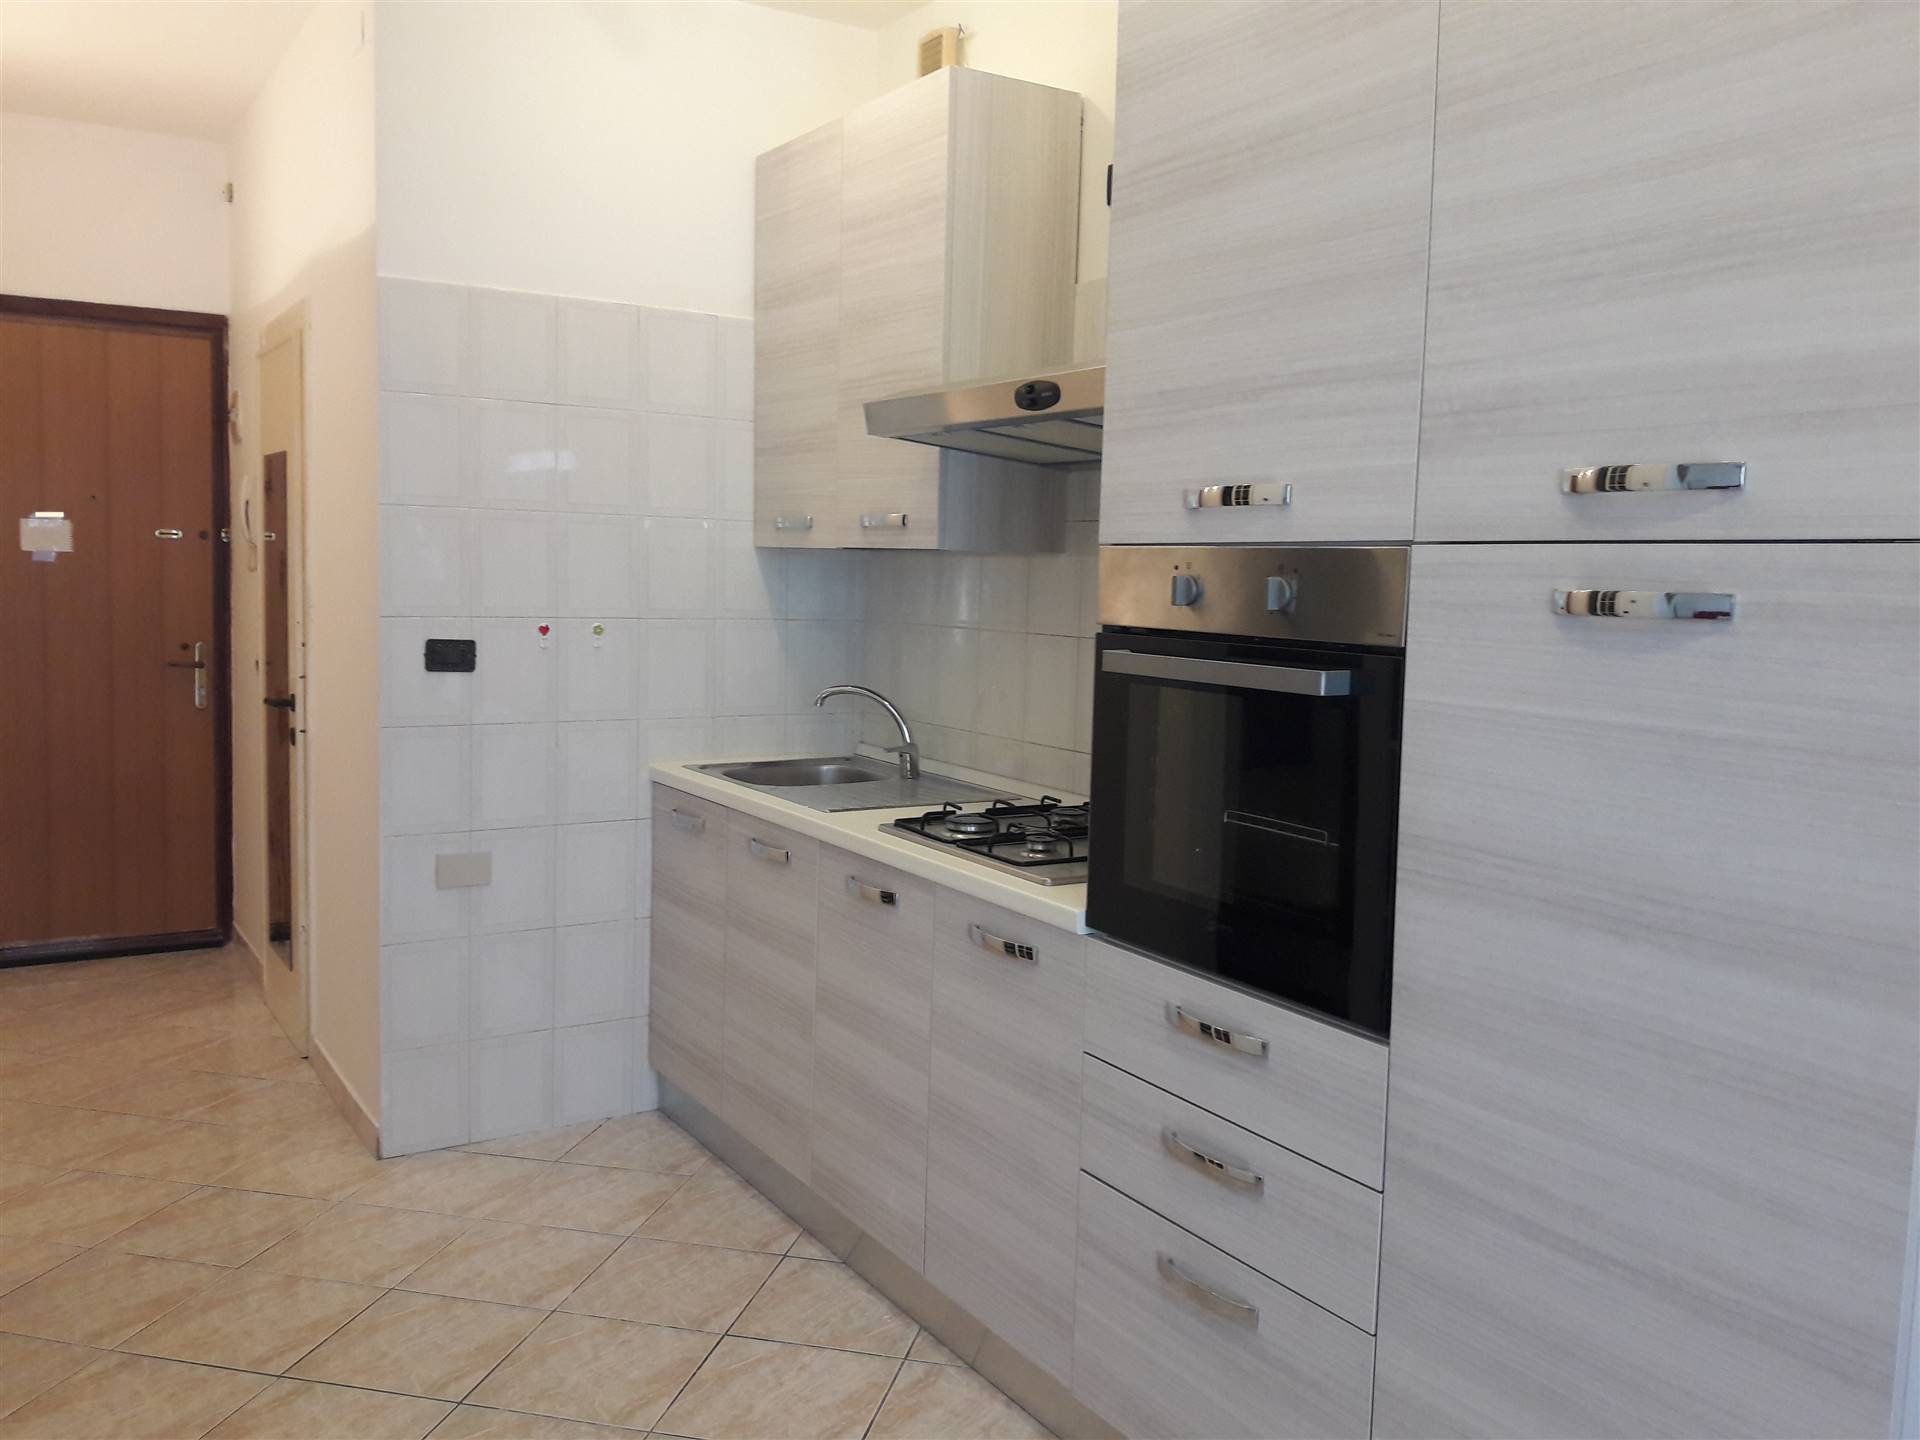 SOTTOMARINA, CHIOGGIA, Apartment for sale of 40 Sq. mt., Good condition, Heating Individual heating system, Energetic class: G, placed at 3° on 6,